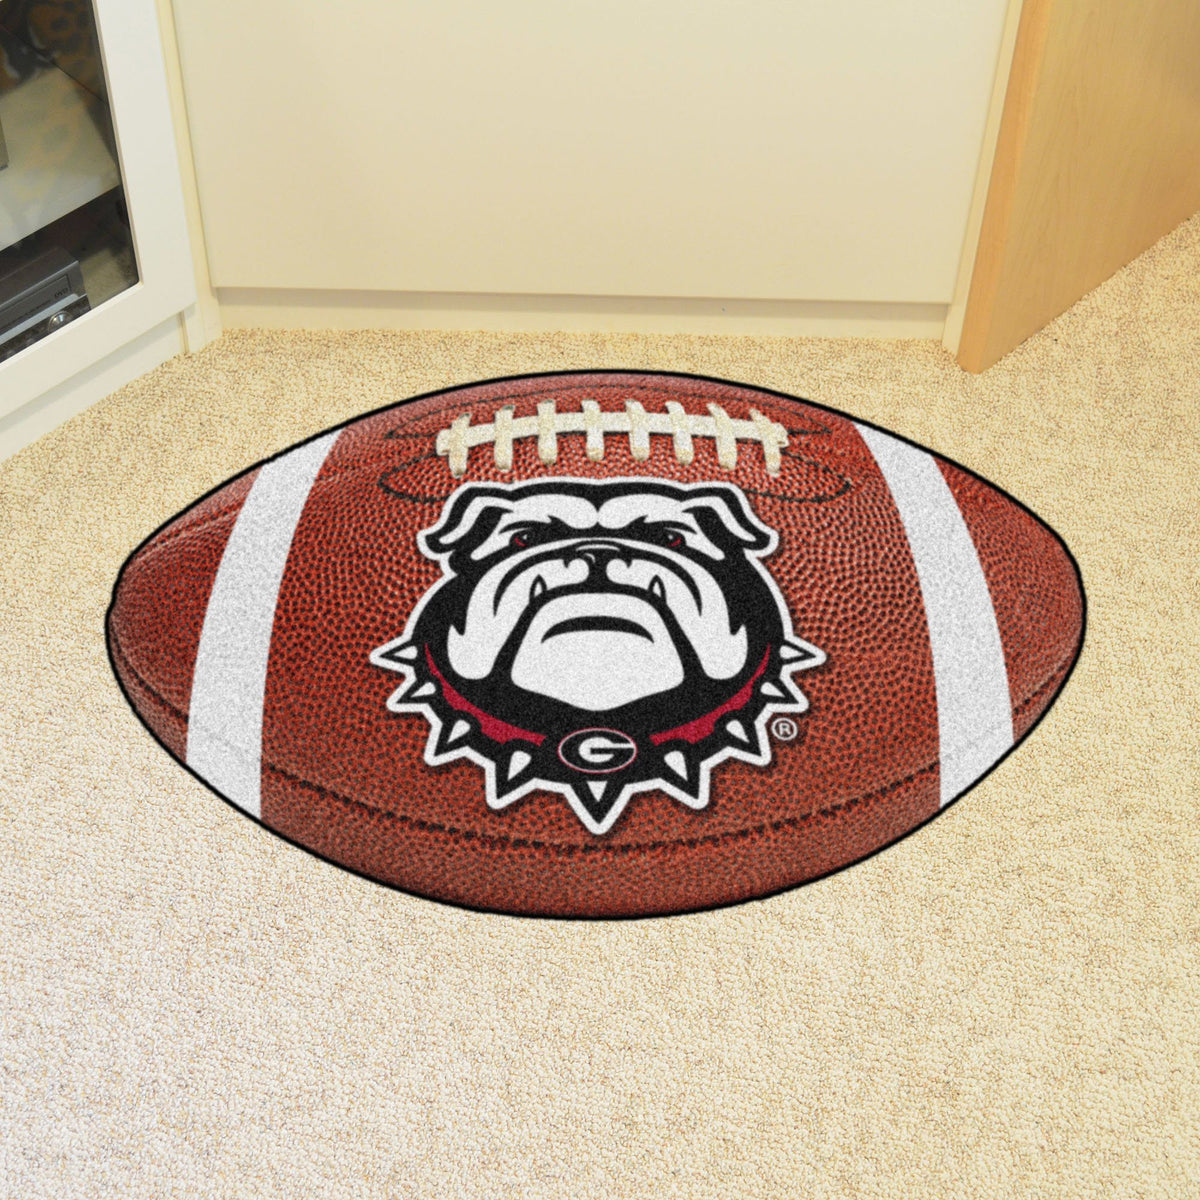 Collegiate - Football Mat: A - K Collegiate Mats, Rectangular Mats, Football Mat, Collegiate, Home Fan Mats Georgia 3